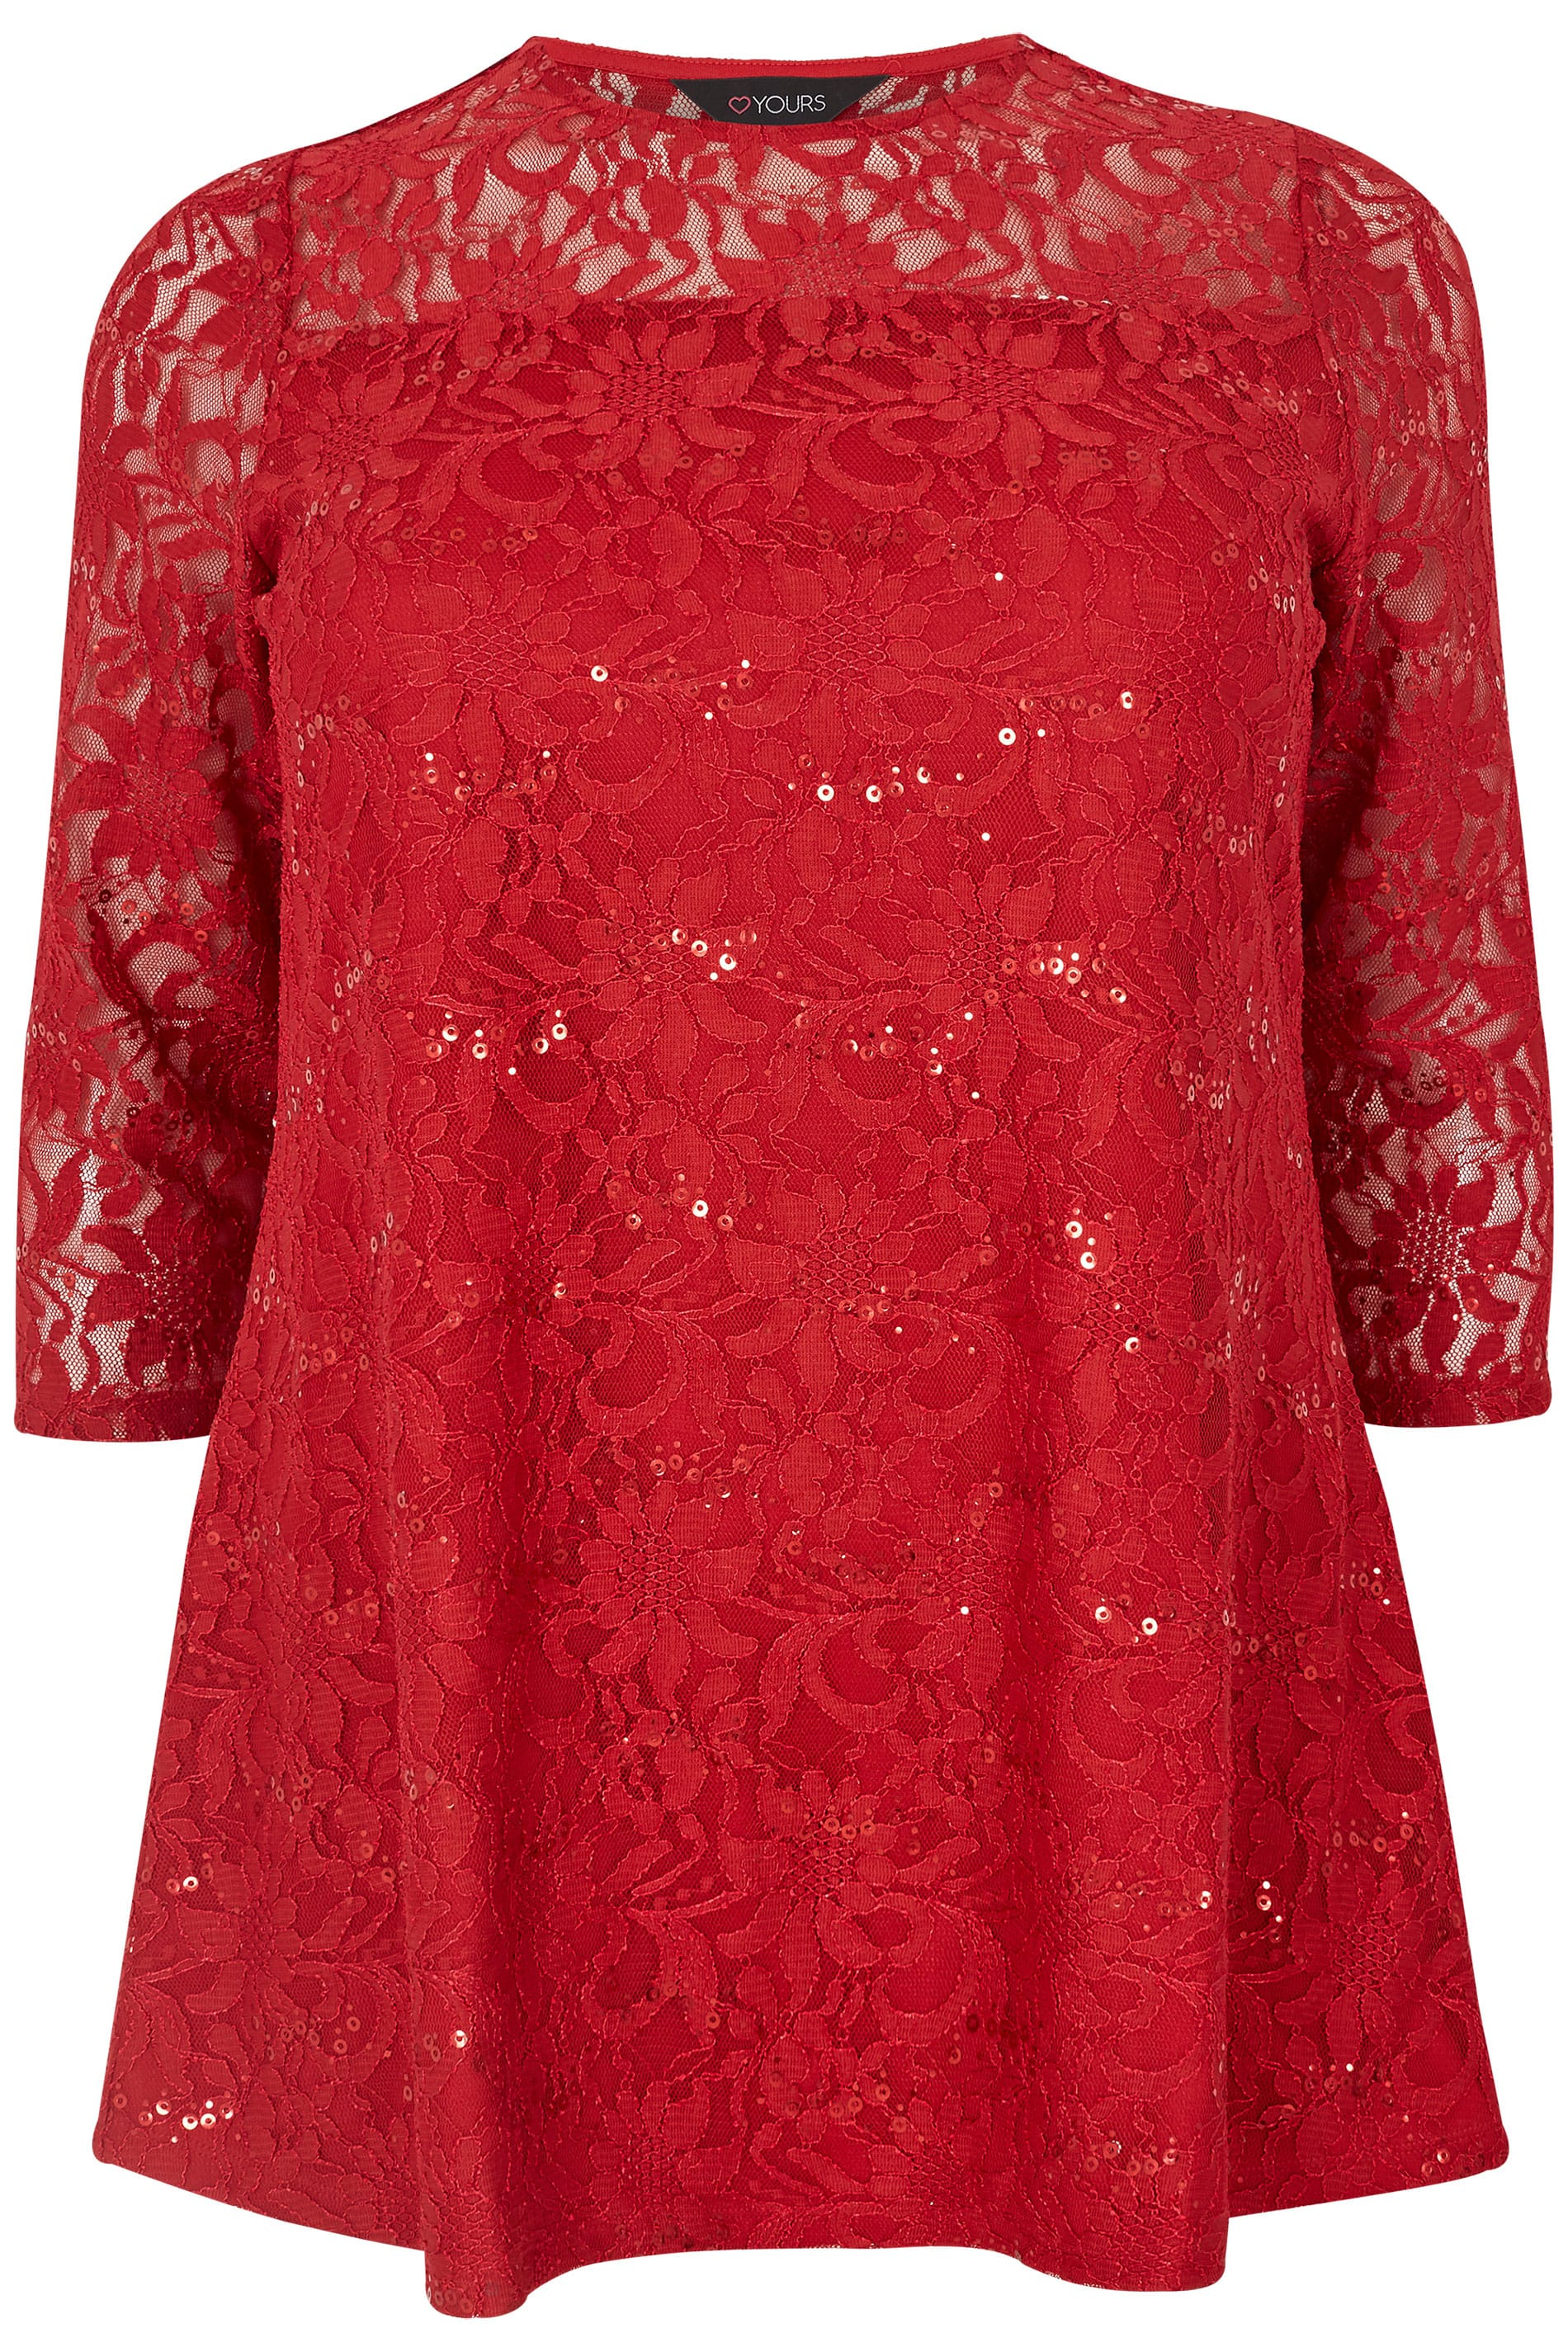 Red Lace Swing Top, Plus size 16 to 36